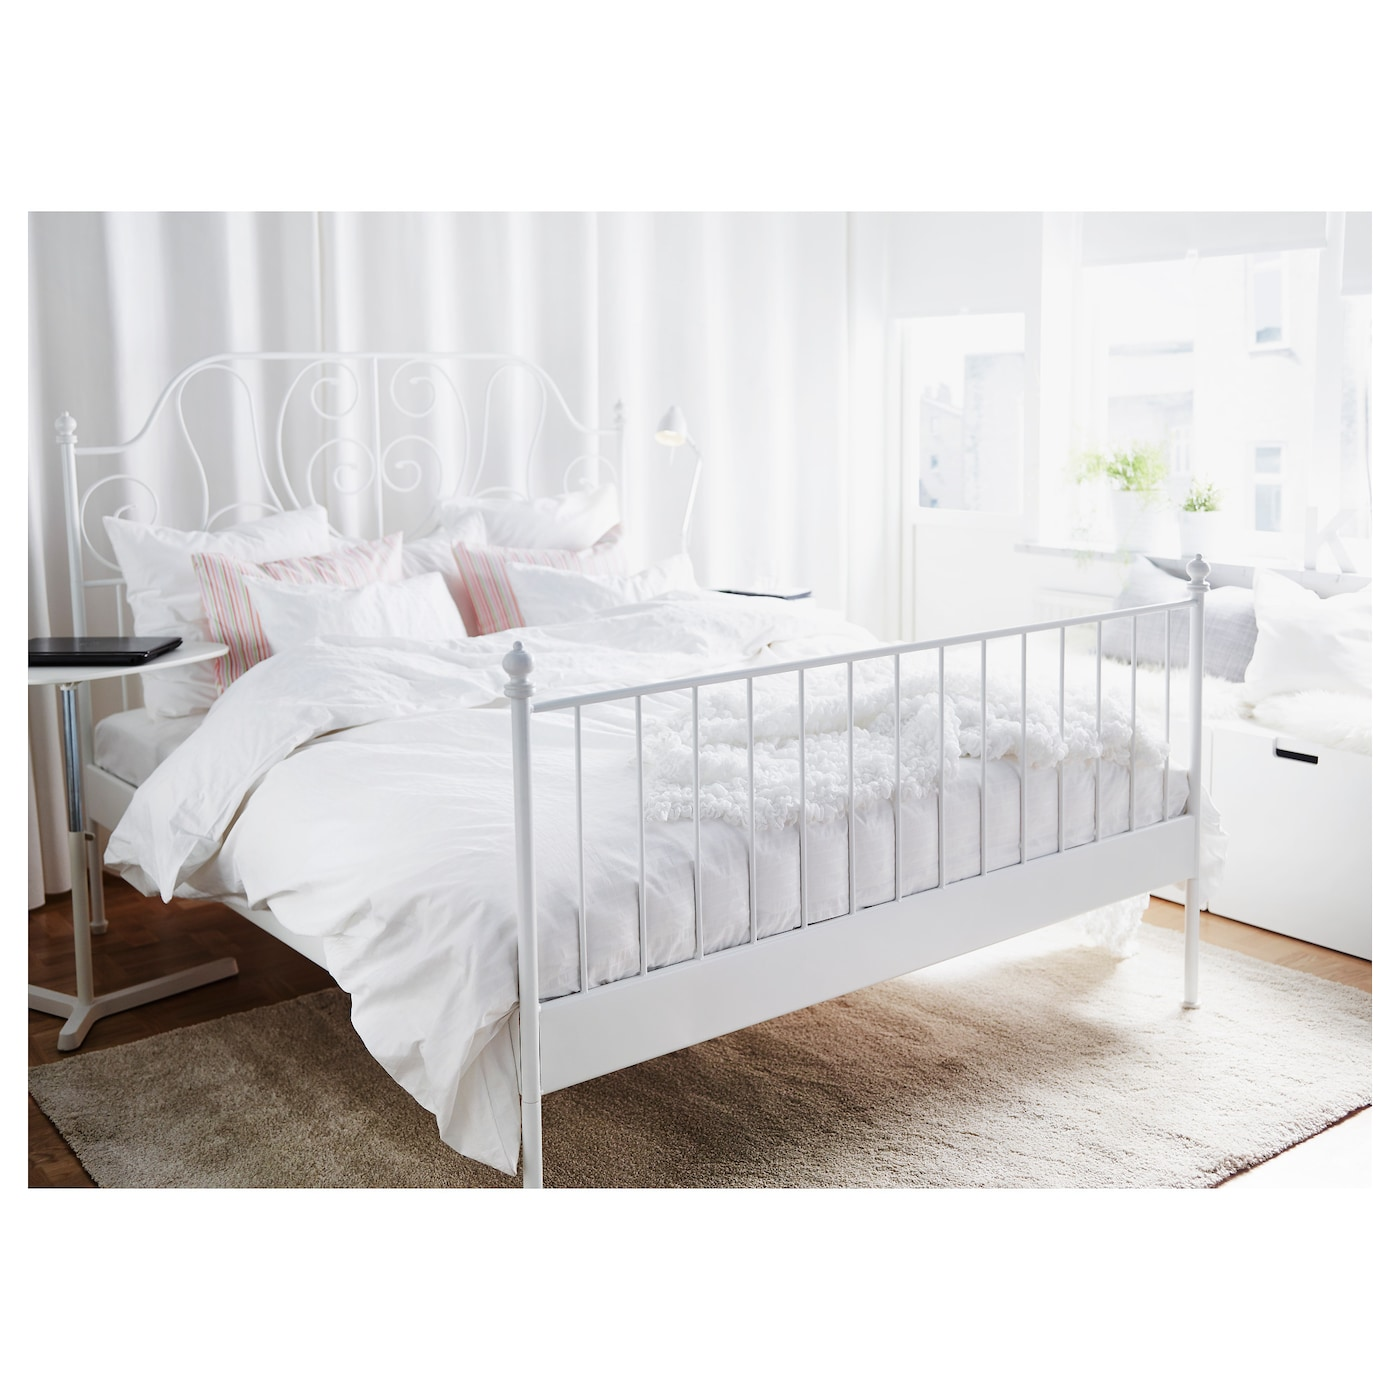 Metal Bed Frame For King Size Bed